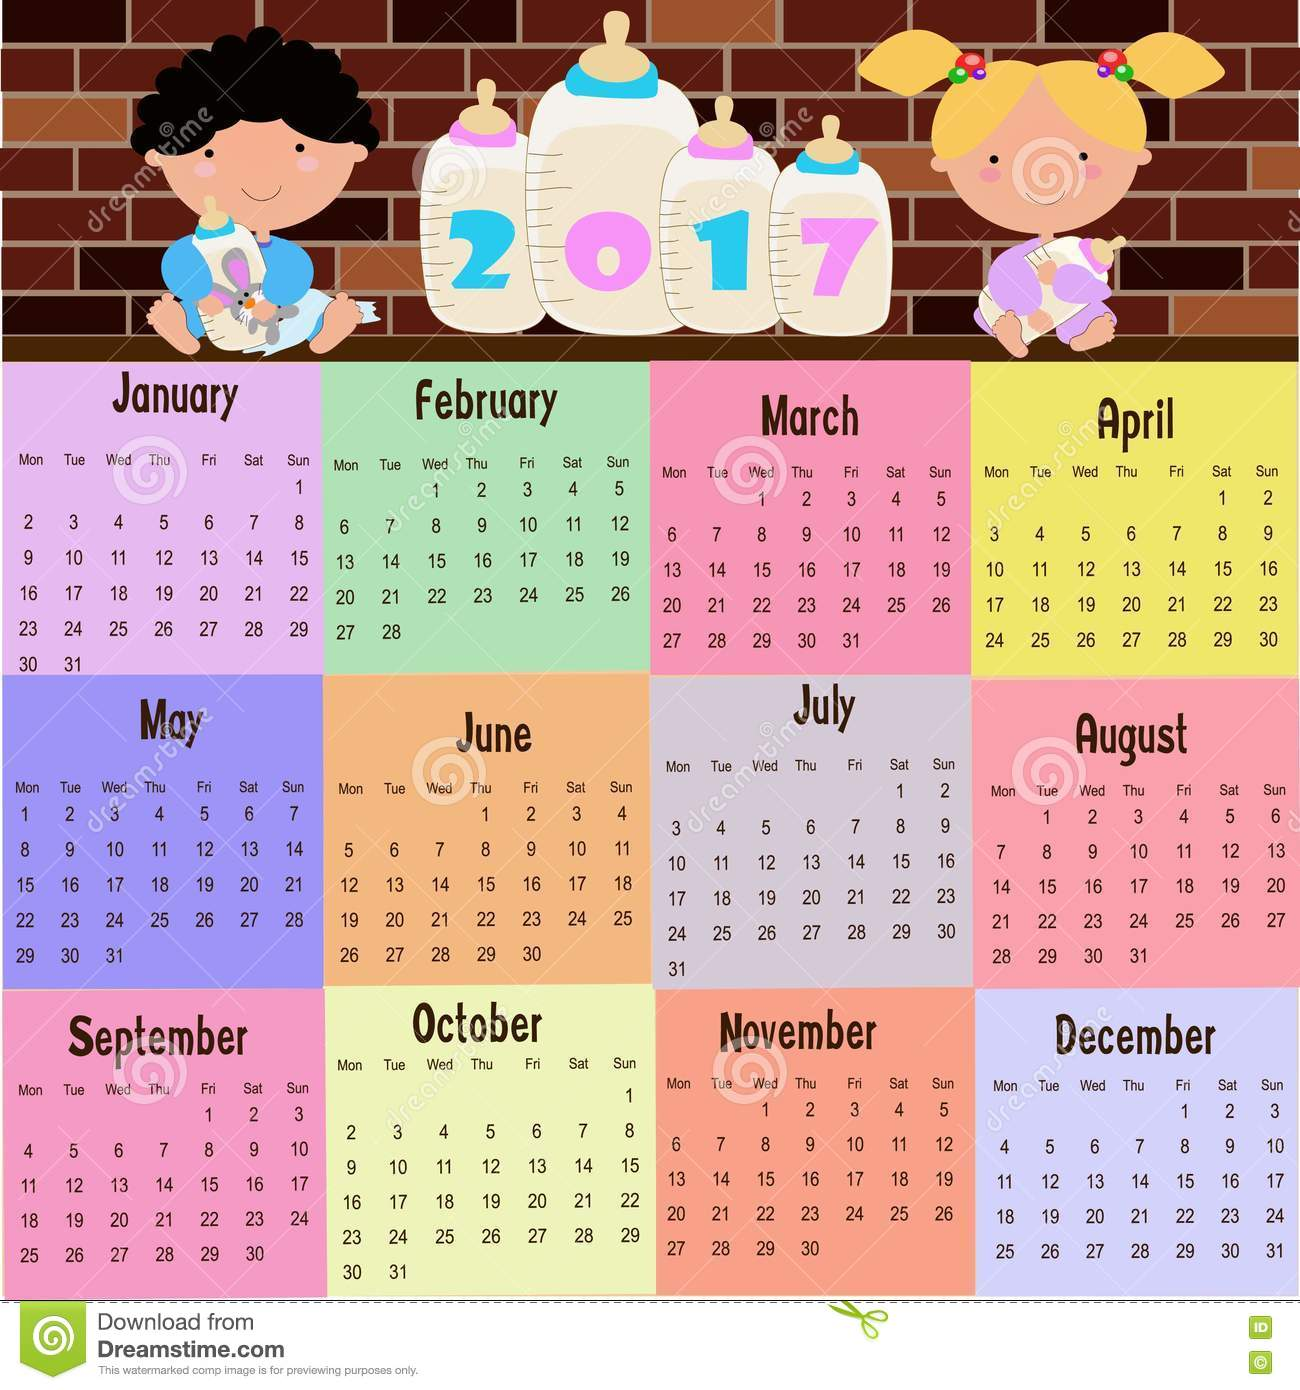 Calendar Pictures For Kids : Calendar clipart for kids imgkid the image kid